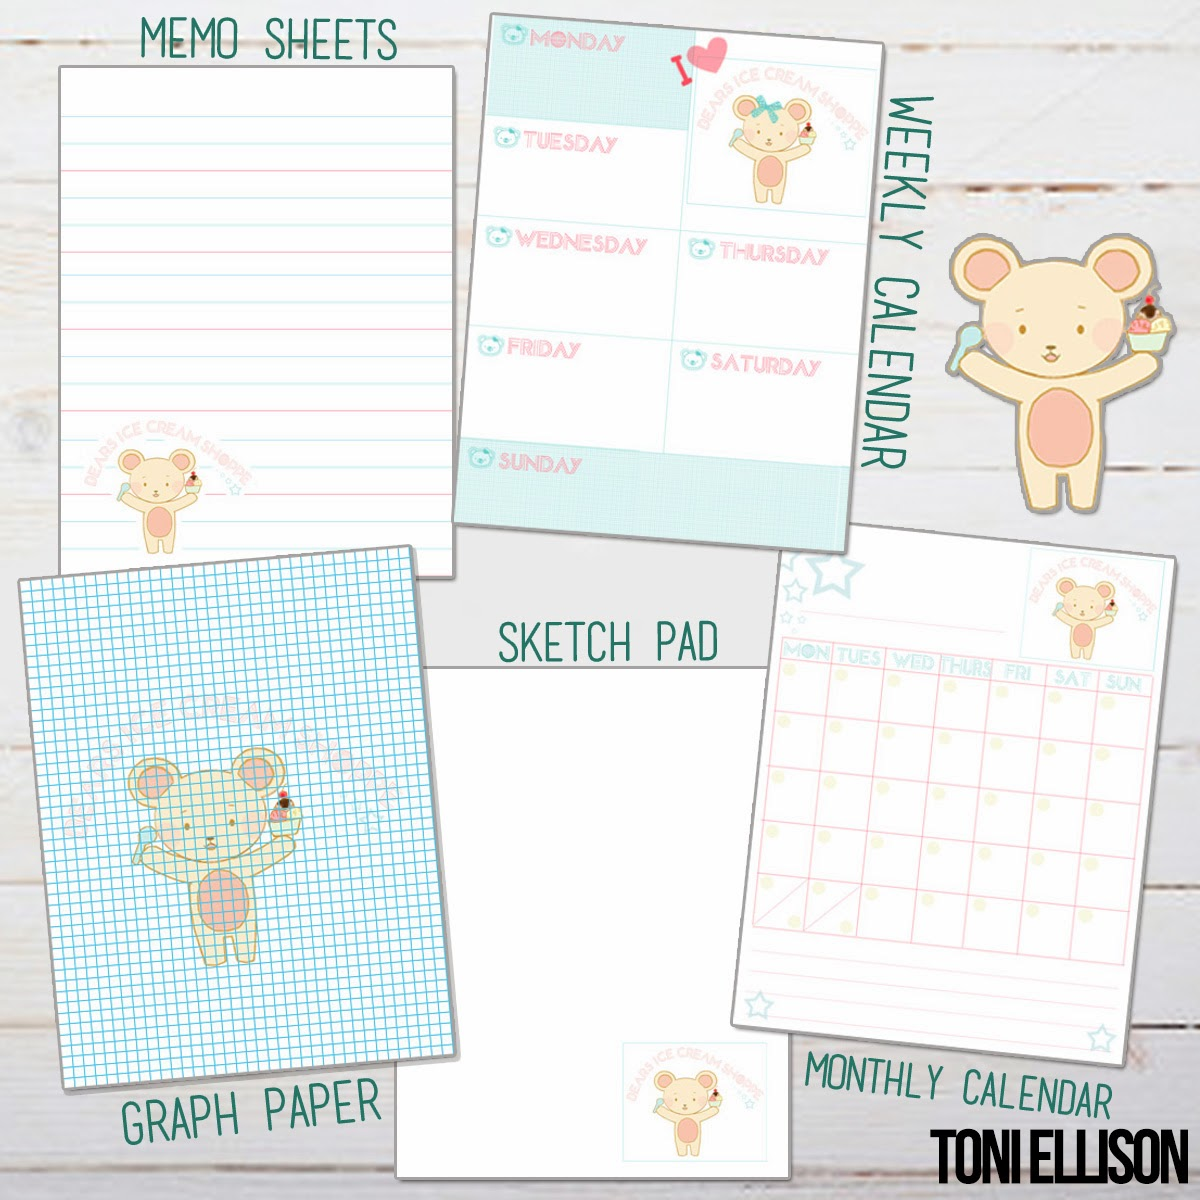 Toni ellison agenda planner stationery diy how to for Build your own planner